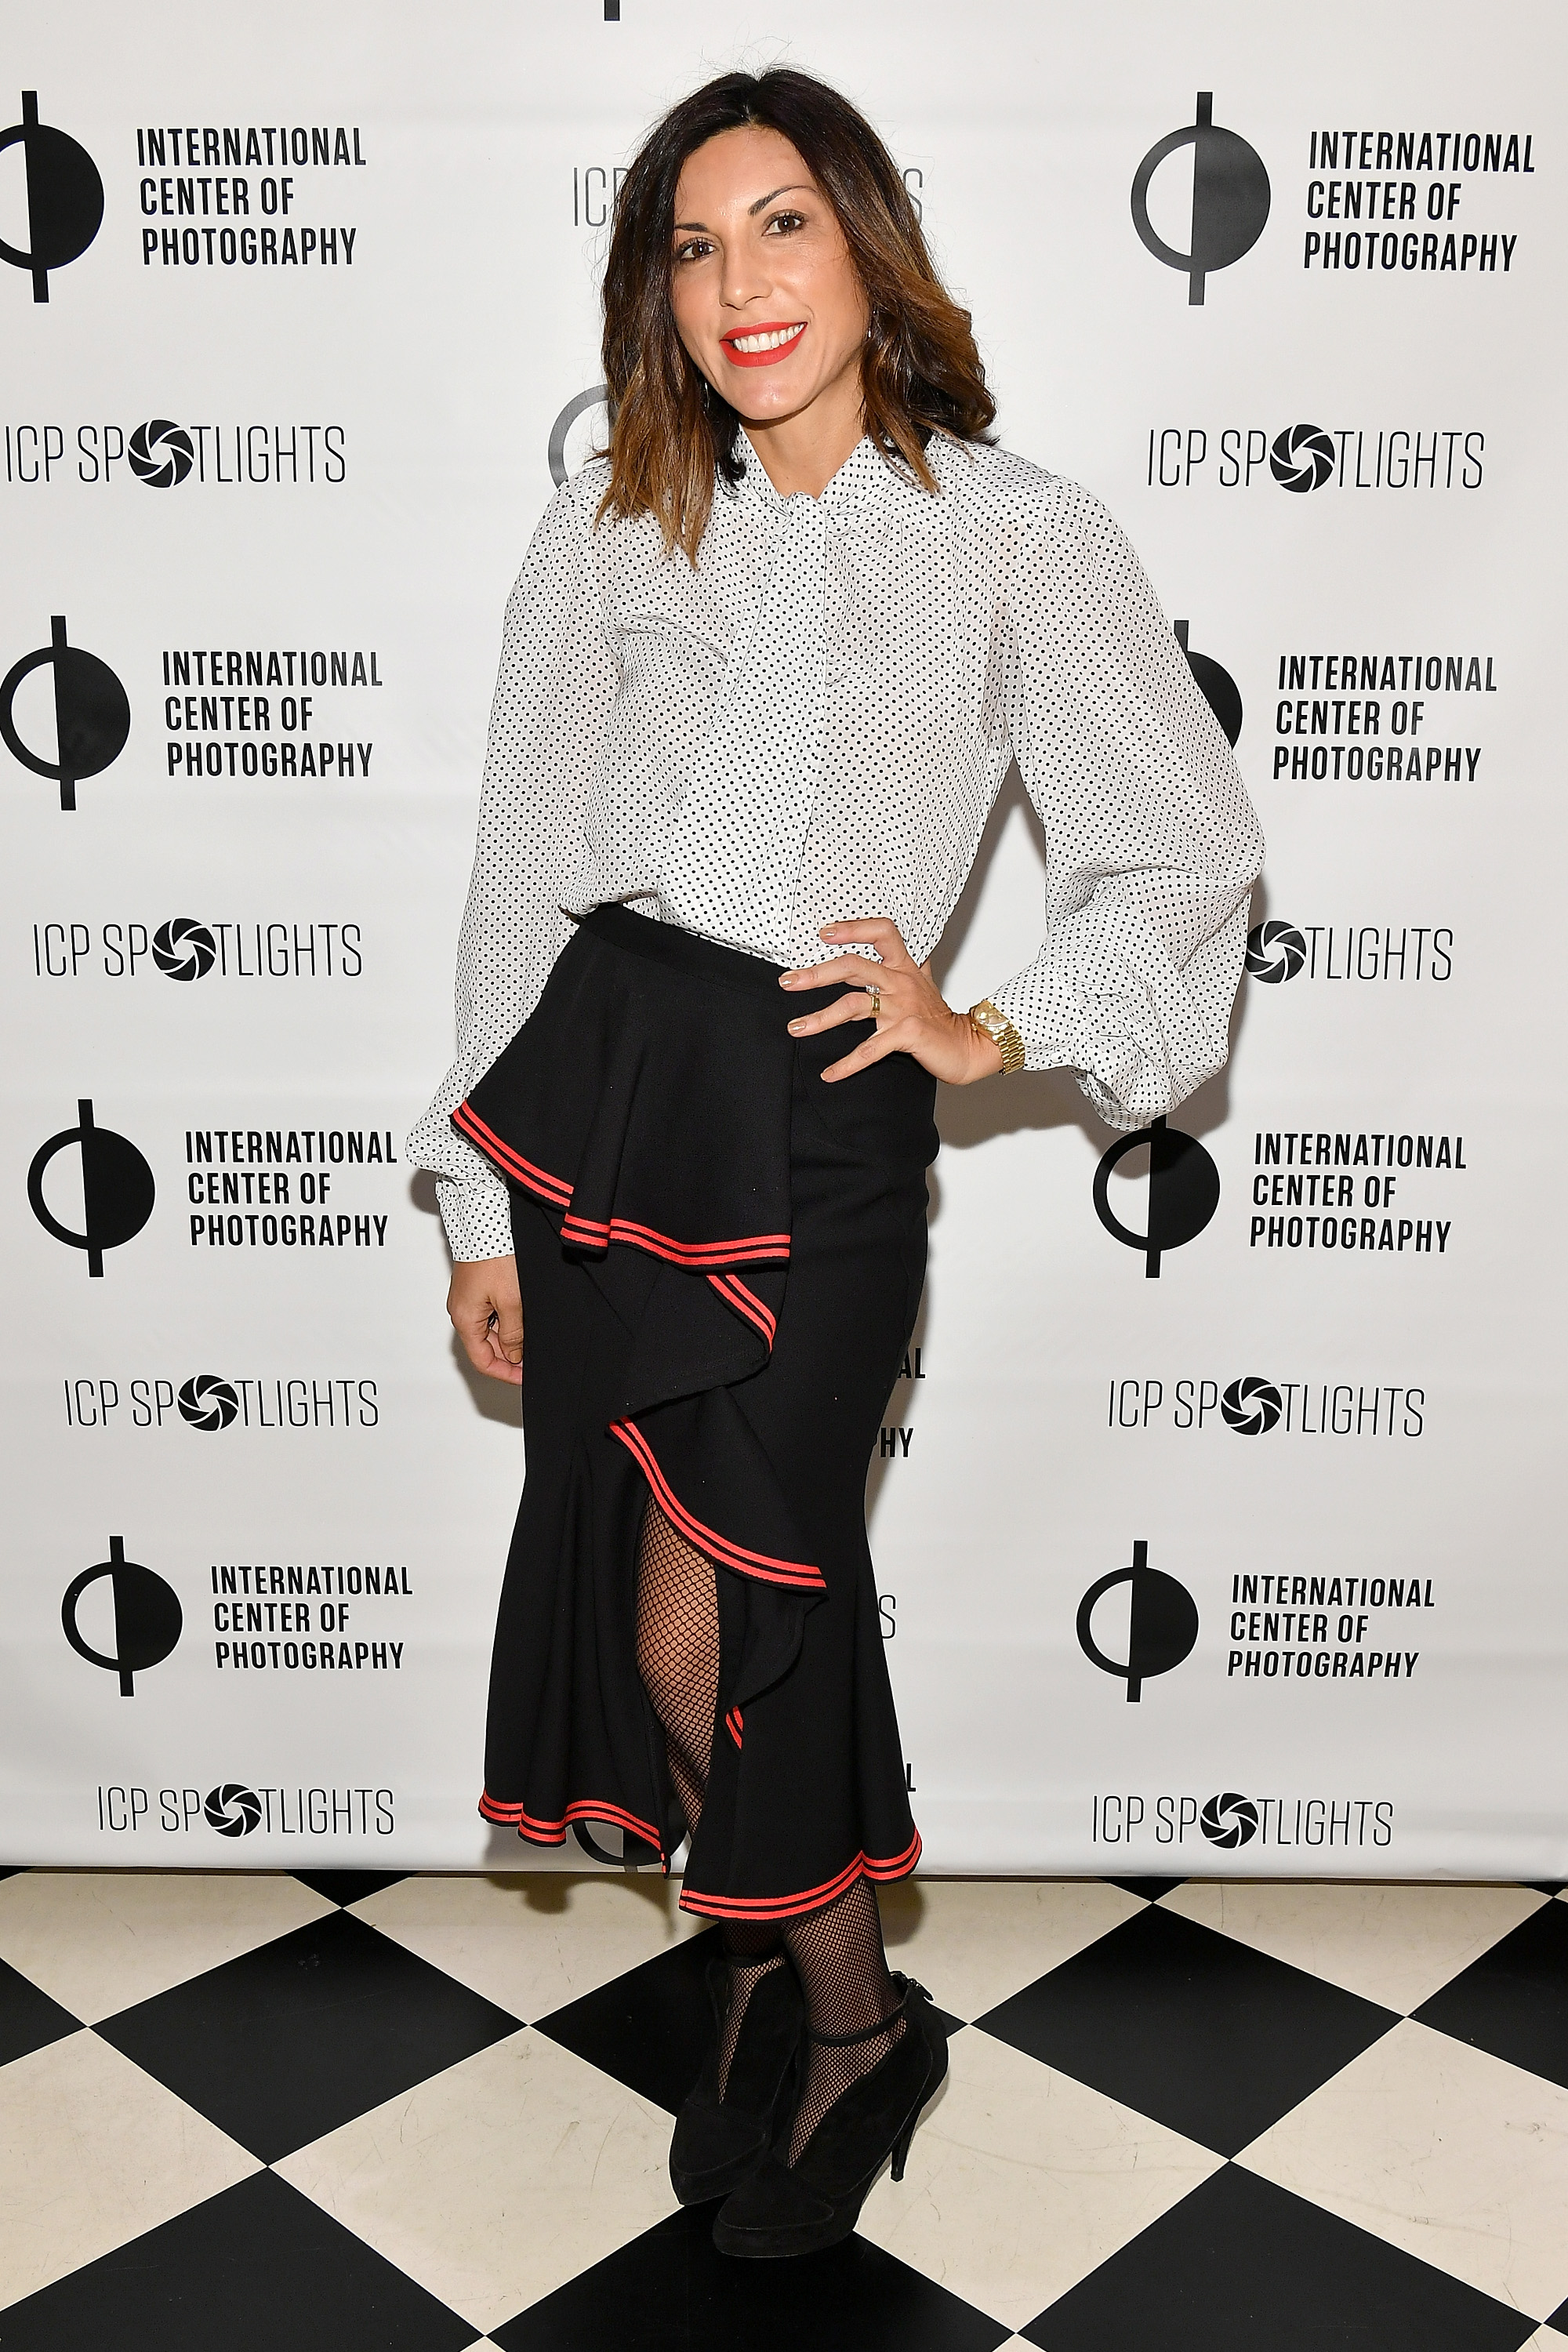 Sheree Hovsepian attends the ICP Spotlights Luncheon Honoring Mickalene Thomas ©Getty Images for ICP